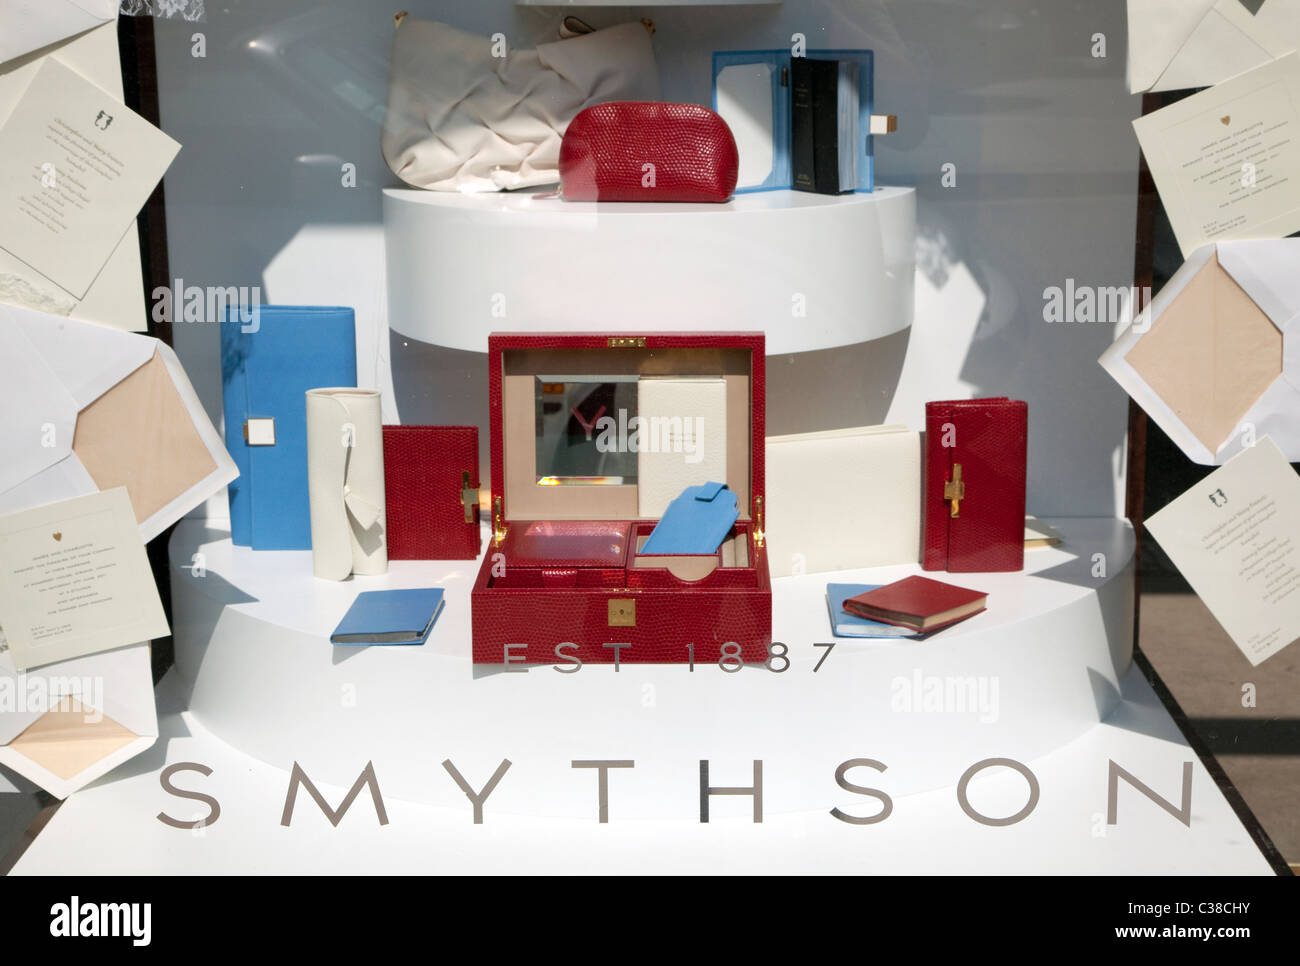 Beau Branch Of Smythson Stationery And Luxury Goods Shop, London   Stock Image